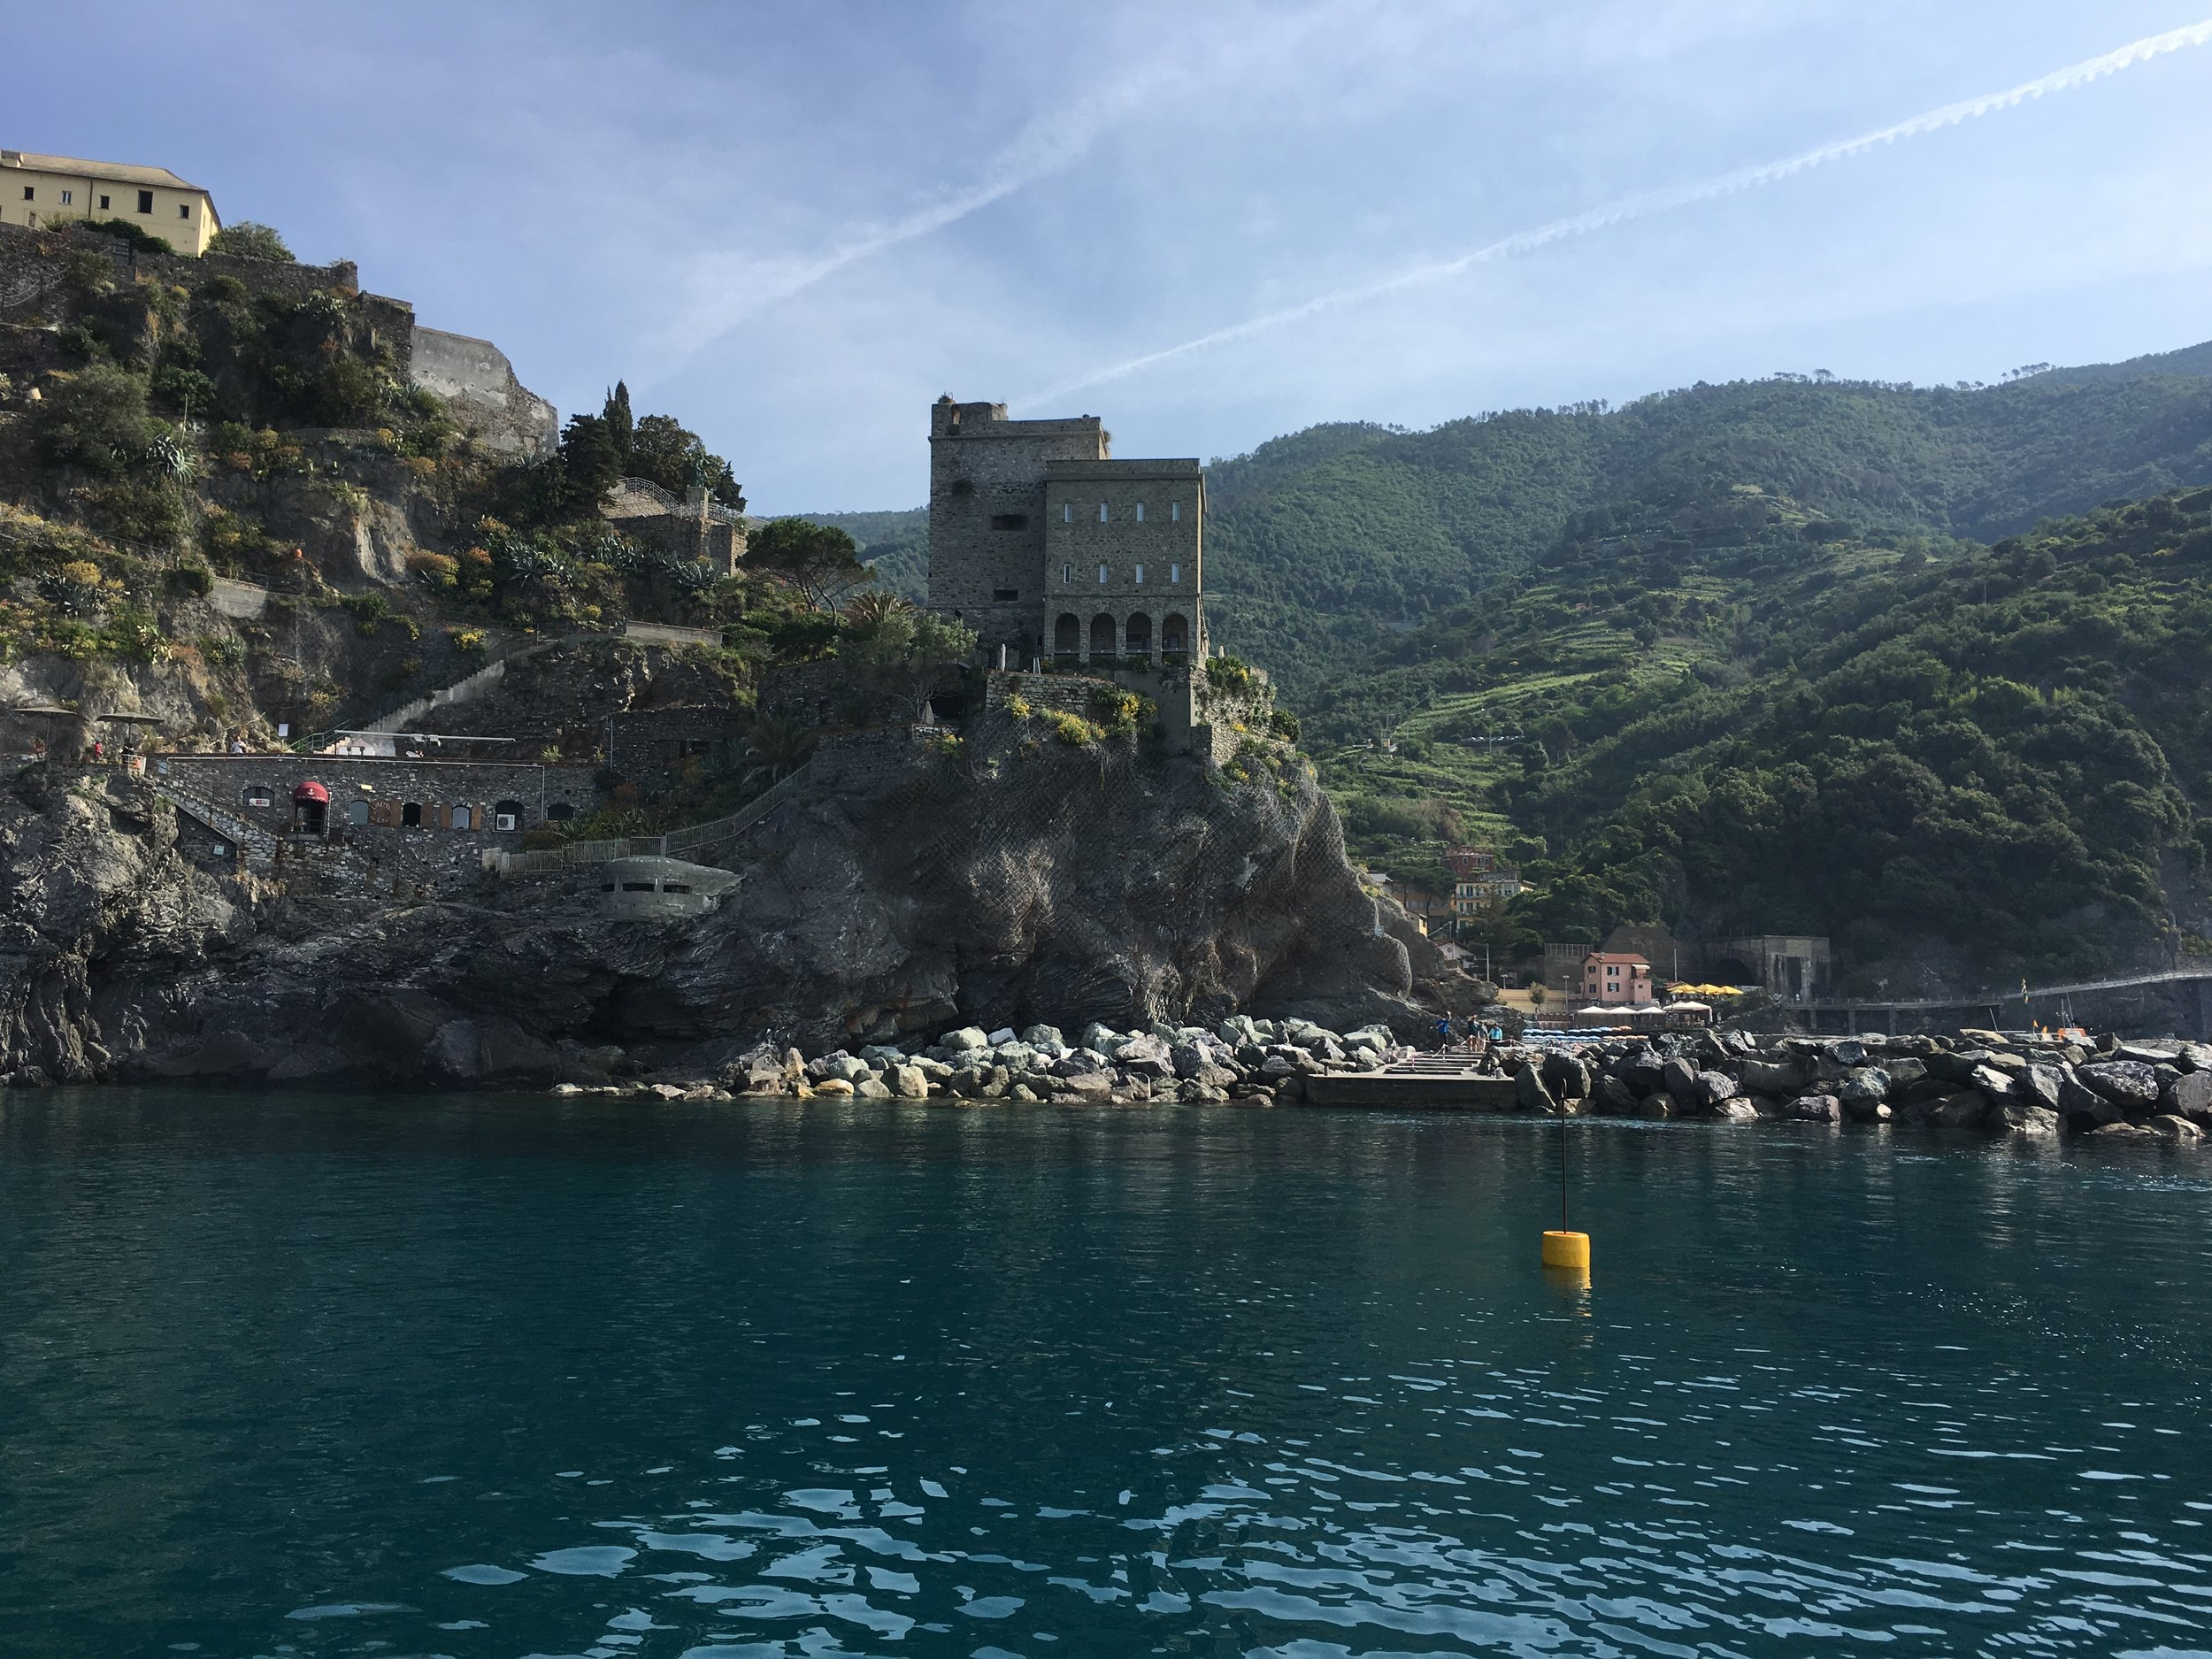 The towns of the Cinque Terre are nestled in valleys, on the hills around the valley all the way down to the Mediterranan Sea.